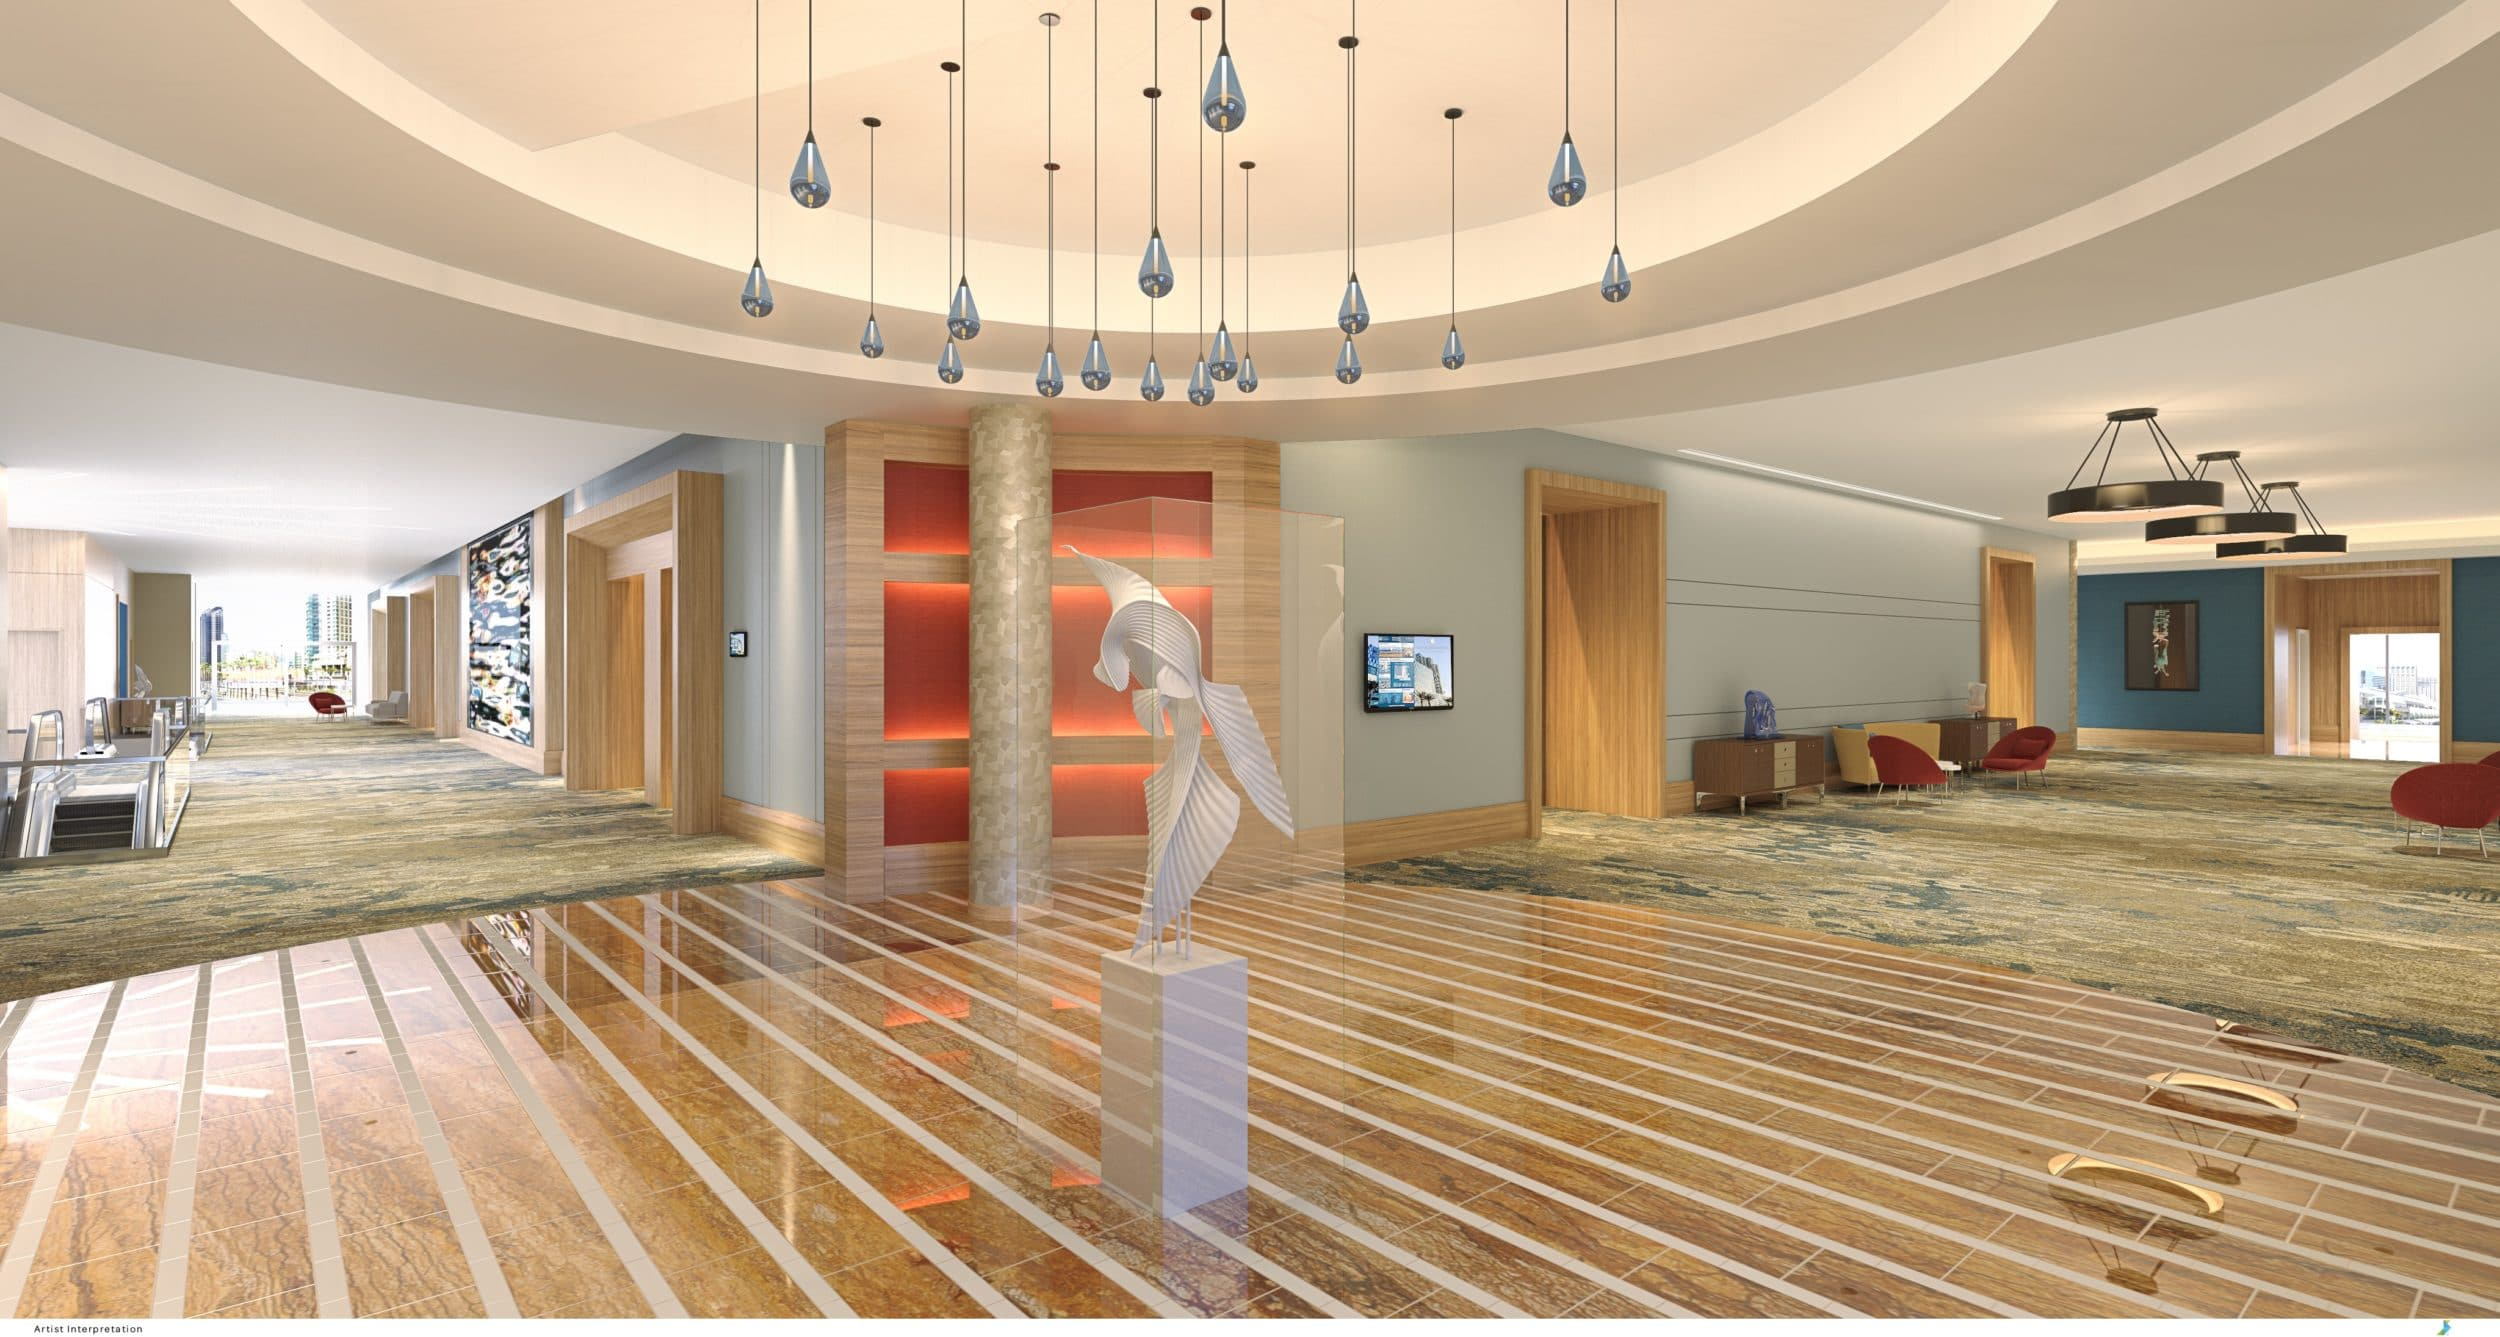 InterContinental San Diego lobby rendering